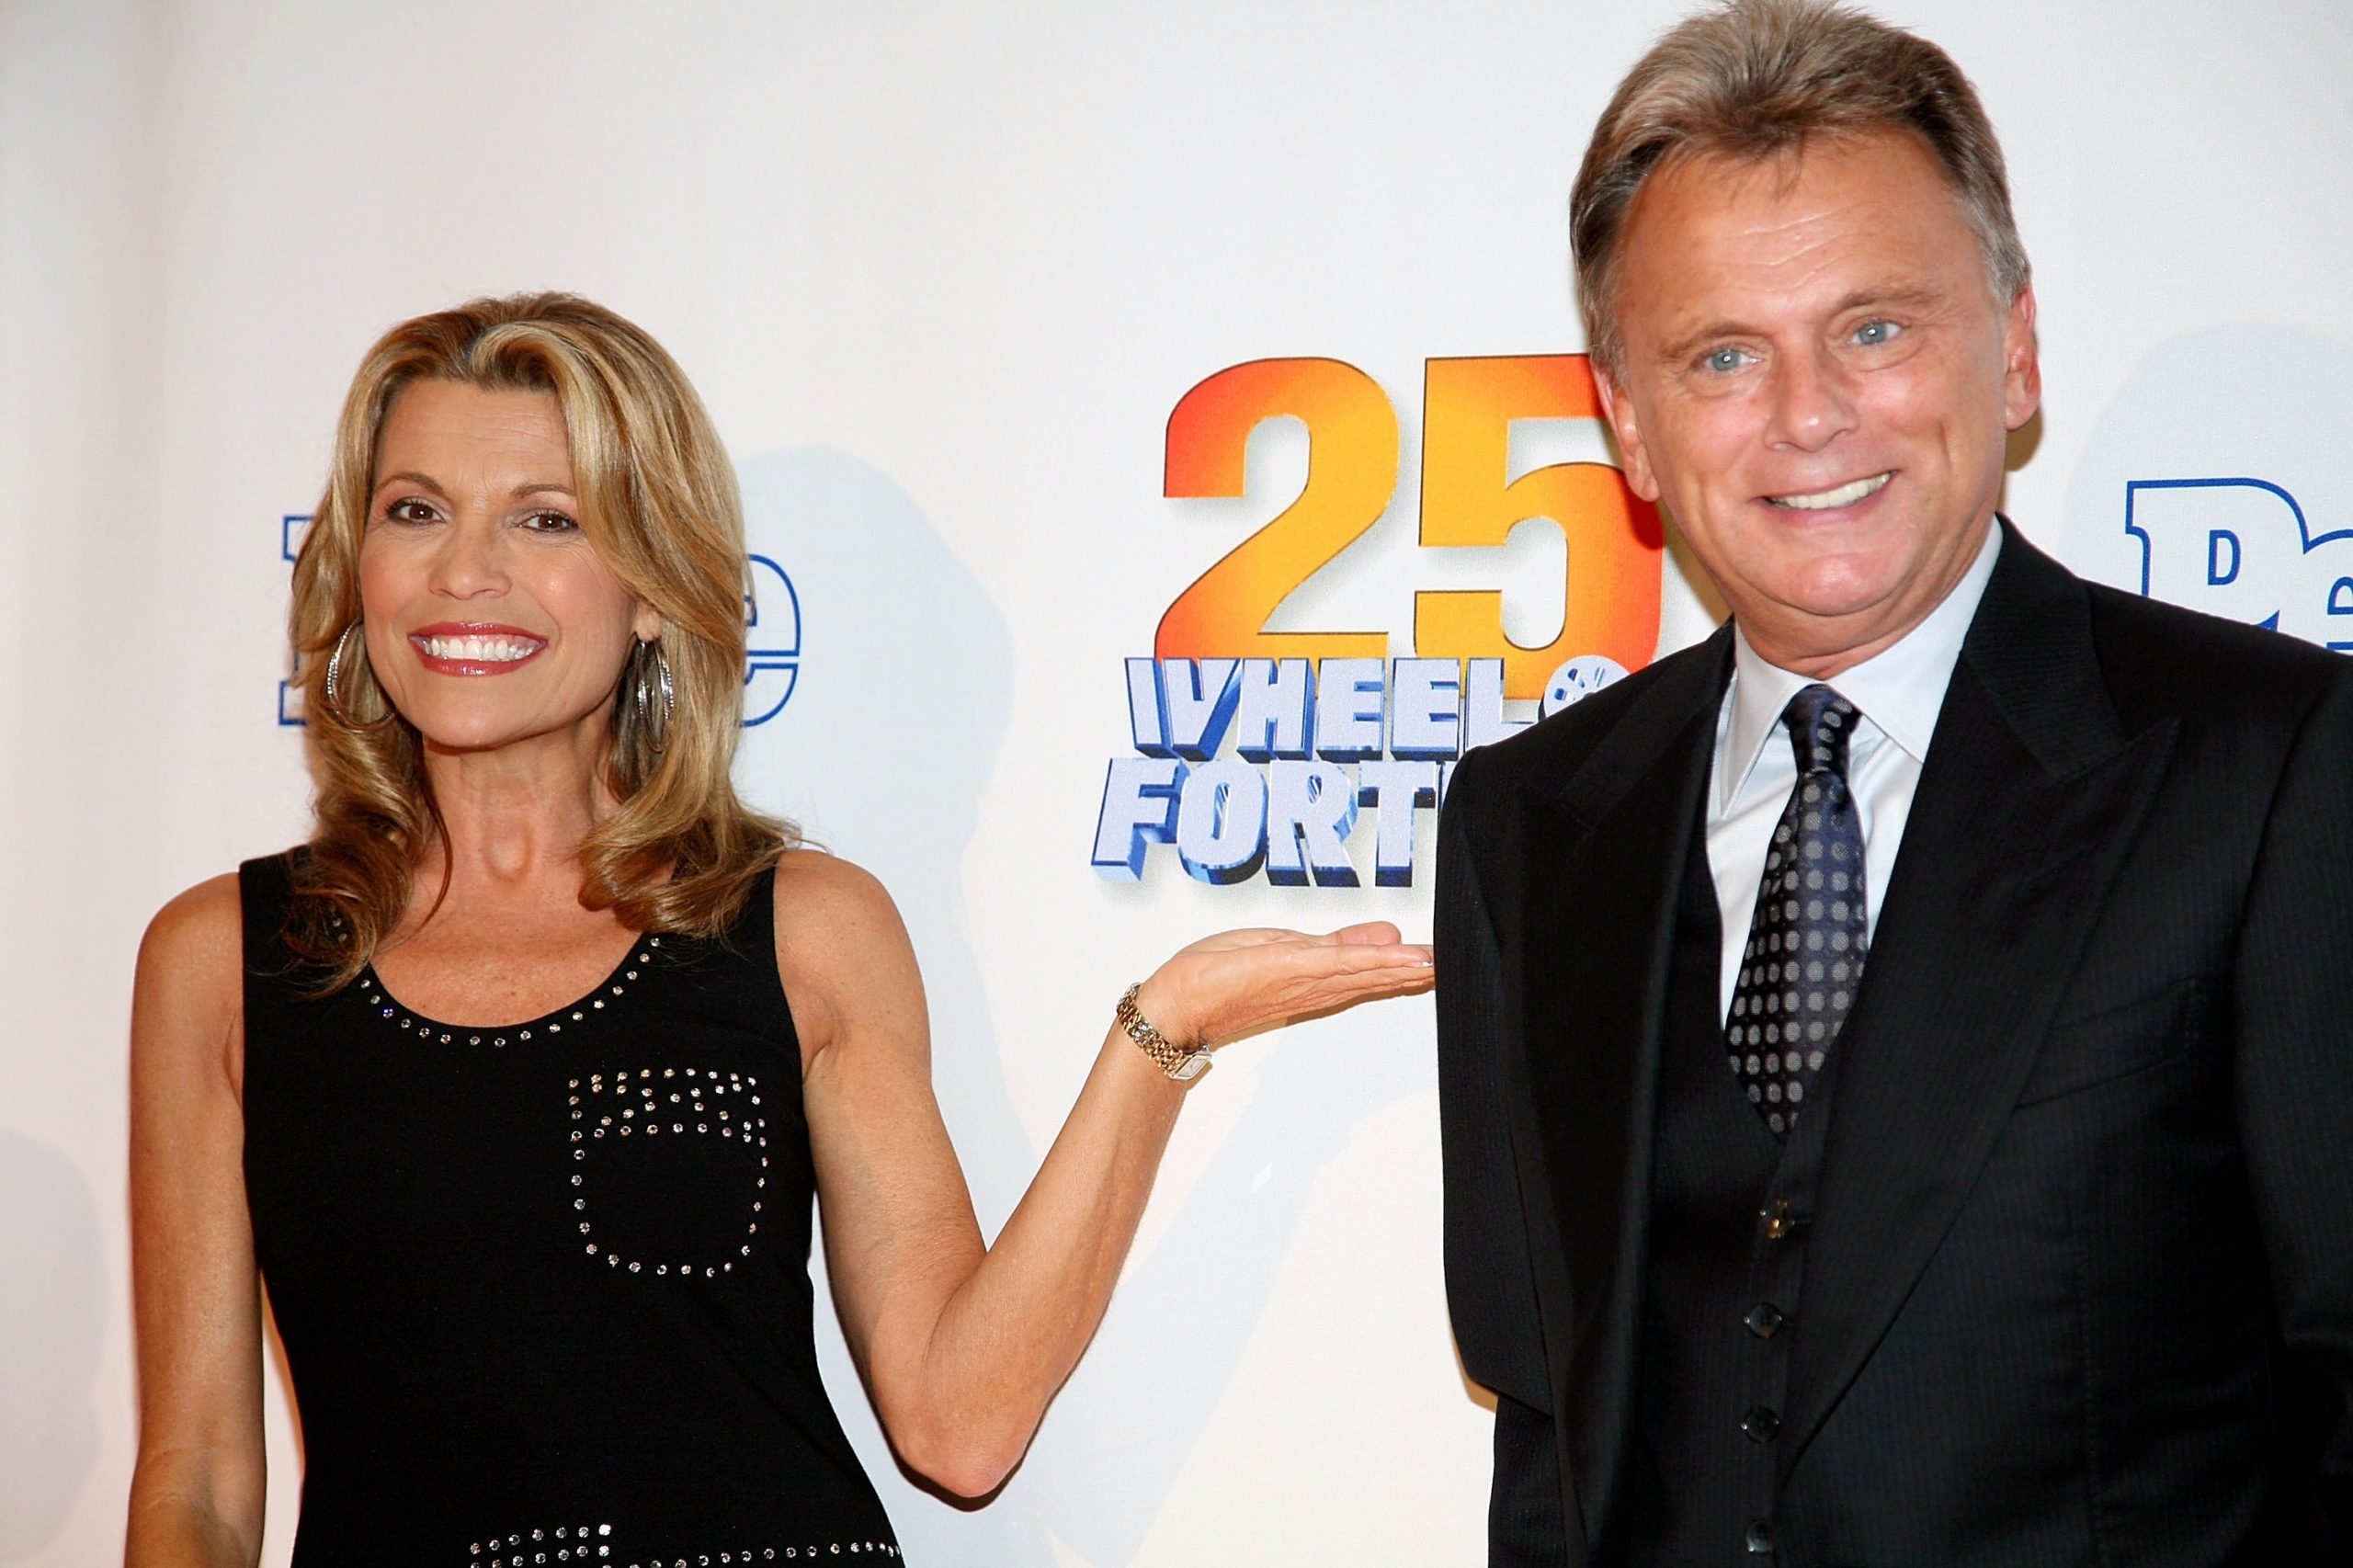 """NEW YORK - SEPTEMBER 27: (R) Host of the TV game show """"Wheel Of Fortune"""" Pat Sajak and model Vanna White attend the 25th anniversary celebration of the television game show """"Wheel Of Fortune"""" at Radio City Music Hall September 27, 2007 in New York City. (Photo by Astrid Stawiarz/Getty Images)"""